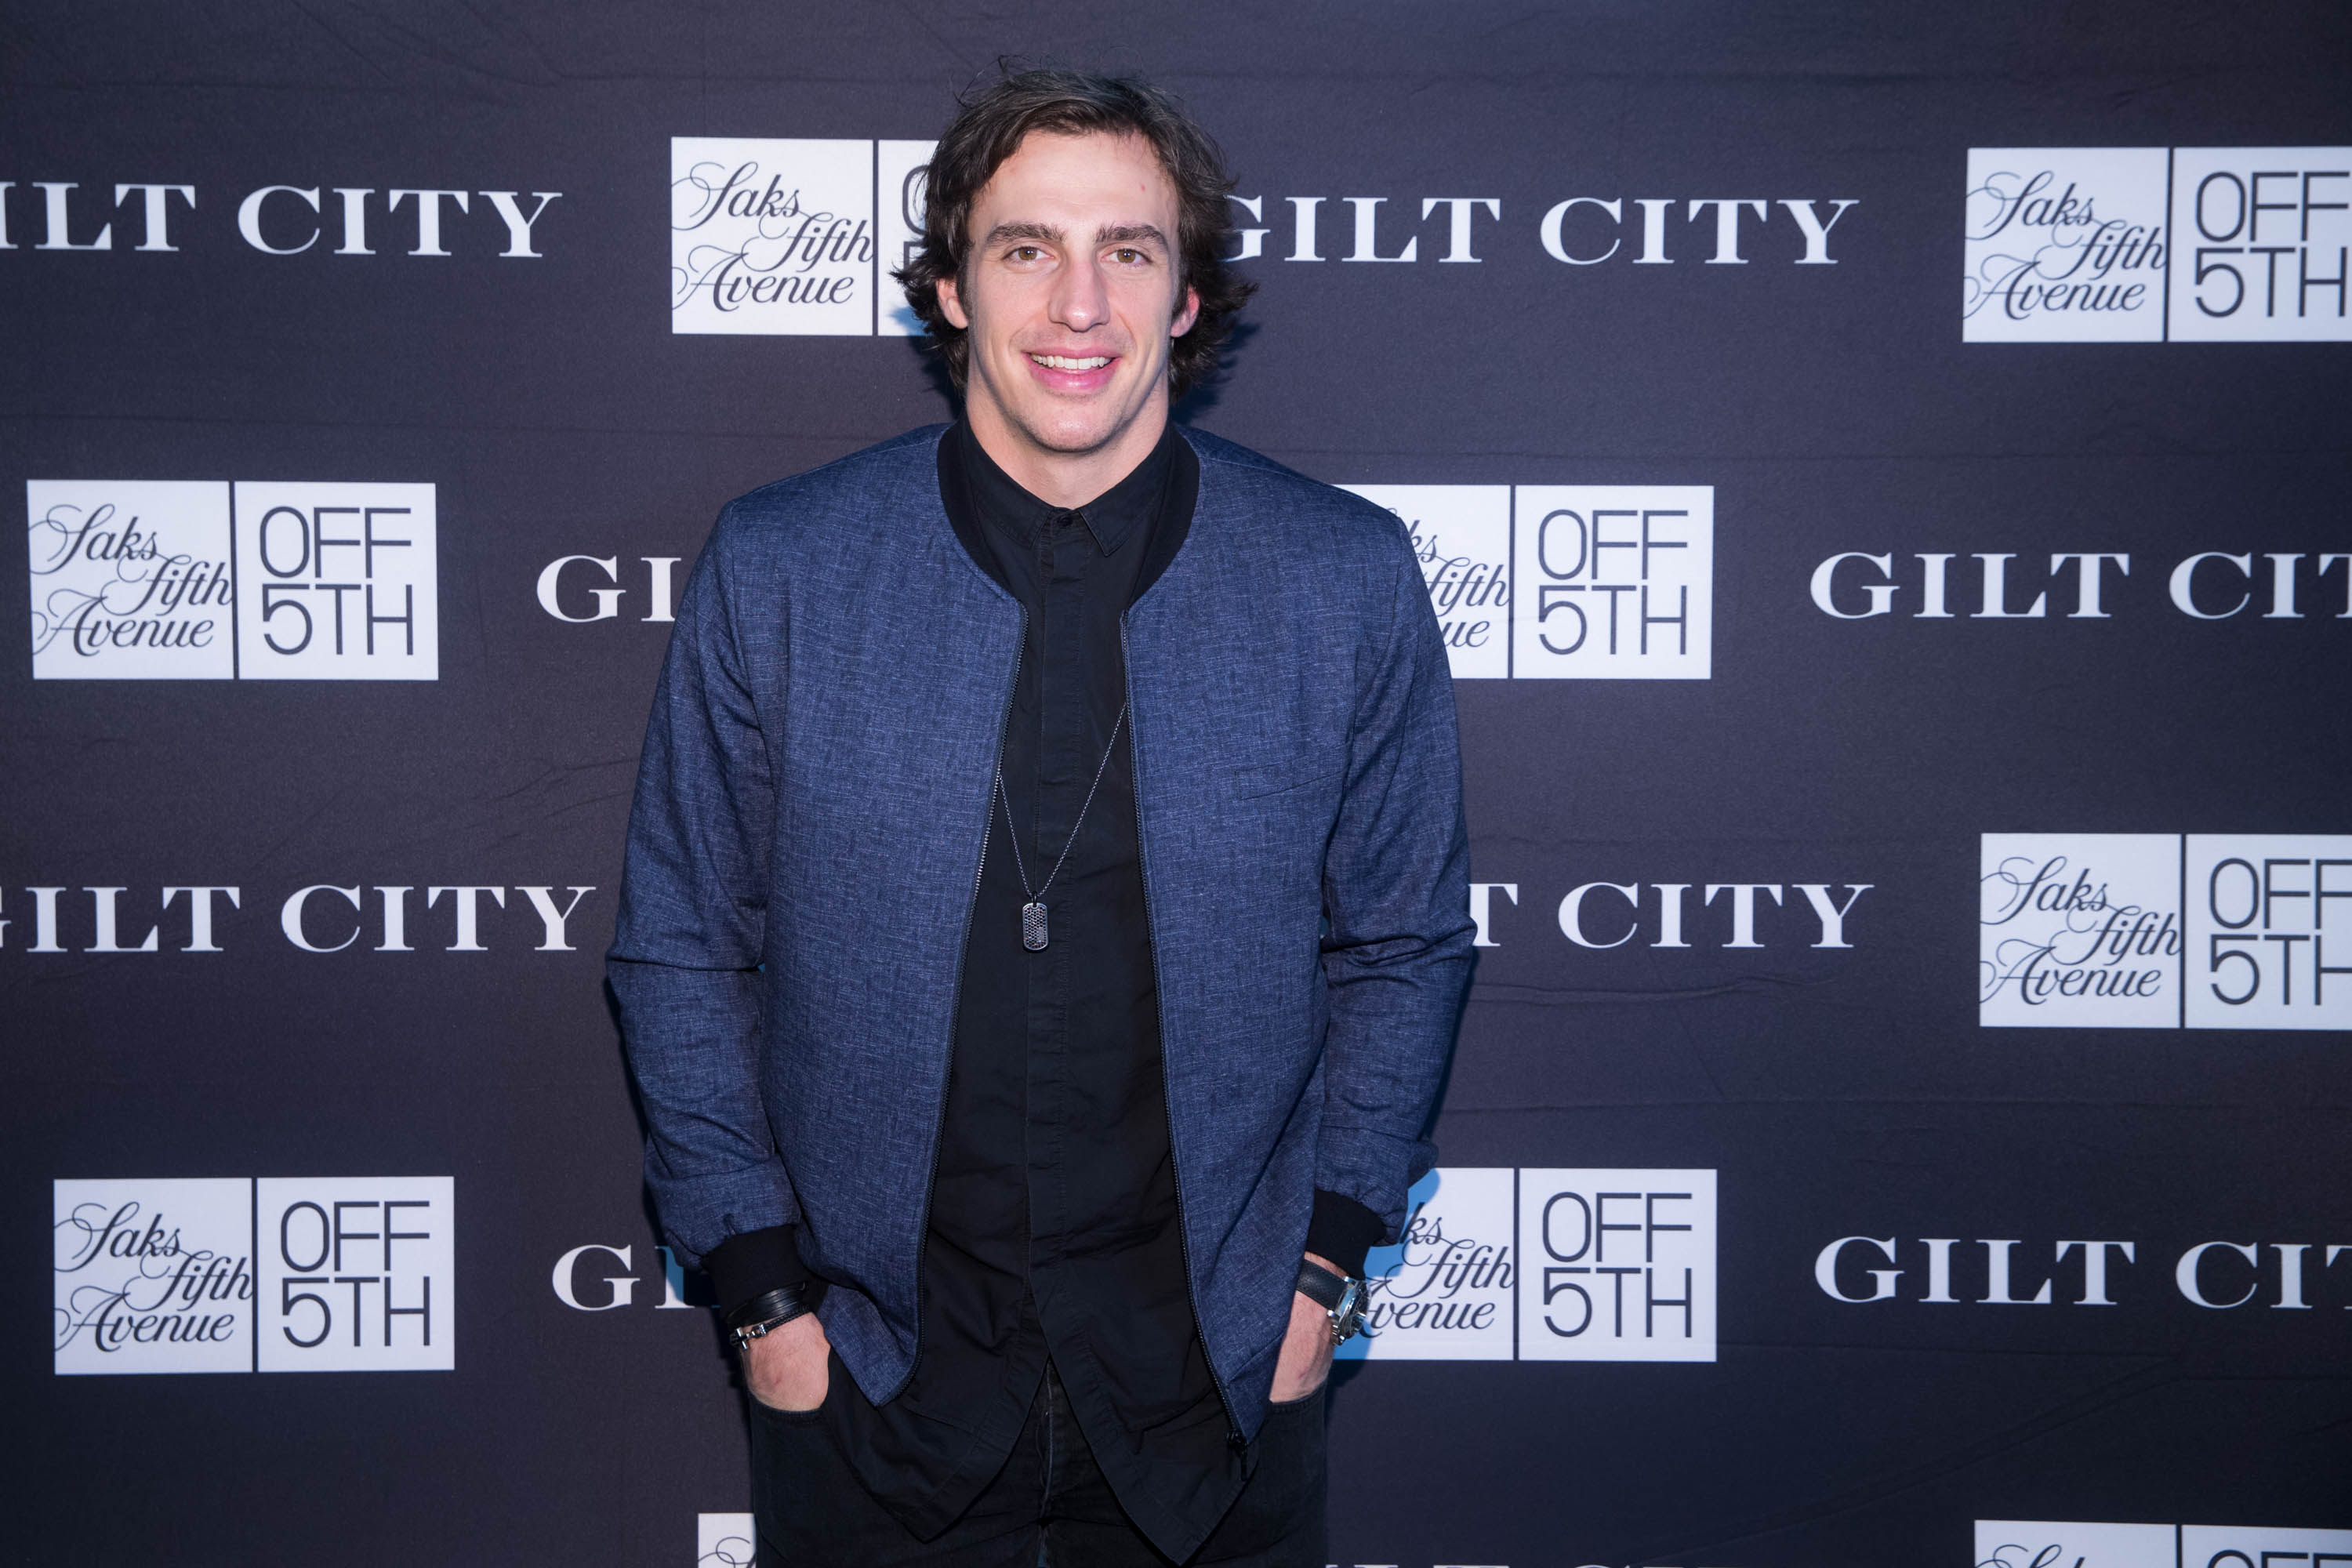 The very first Saks OFF 5TH store opened in Seattle this week, and what's a celebration without a Seahawk! Luke Willson stopped by the celebrate the new Westlake Center location, which will be open from 10 a.m. to 9 p.m. on Pine St. (Image: Saks Fifth Avenue)